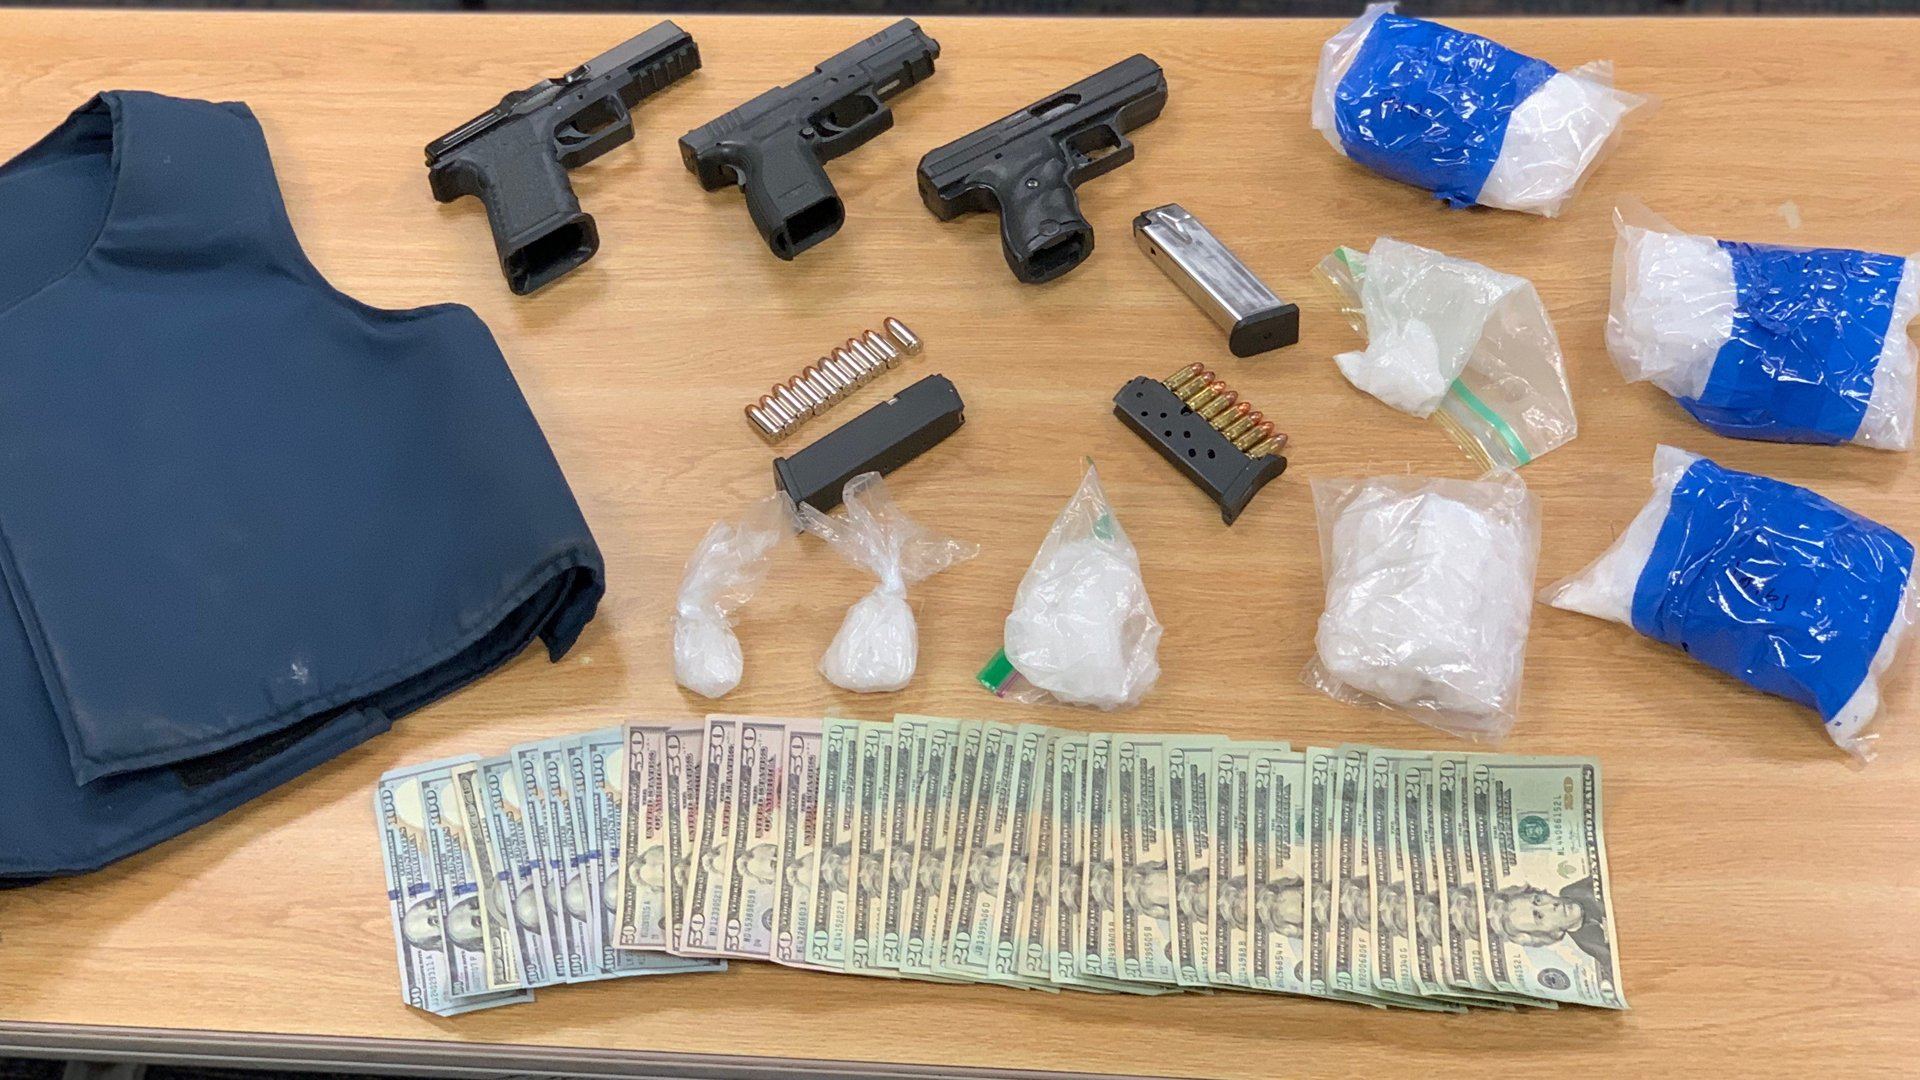 Deputies arrested two men and seized 3.7 pounds of drugs, three guns, a bullet proof vest and cash during a bust in Ventura on Jan. 9, 2020. (Credit: Ventura County Sheriff's Office)